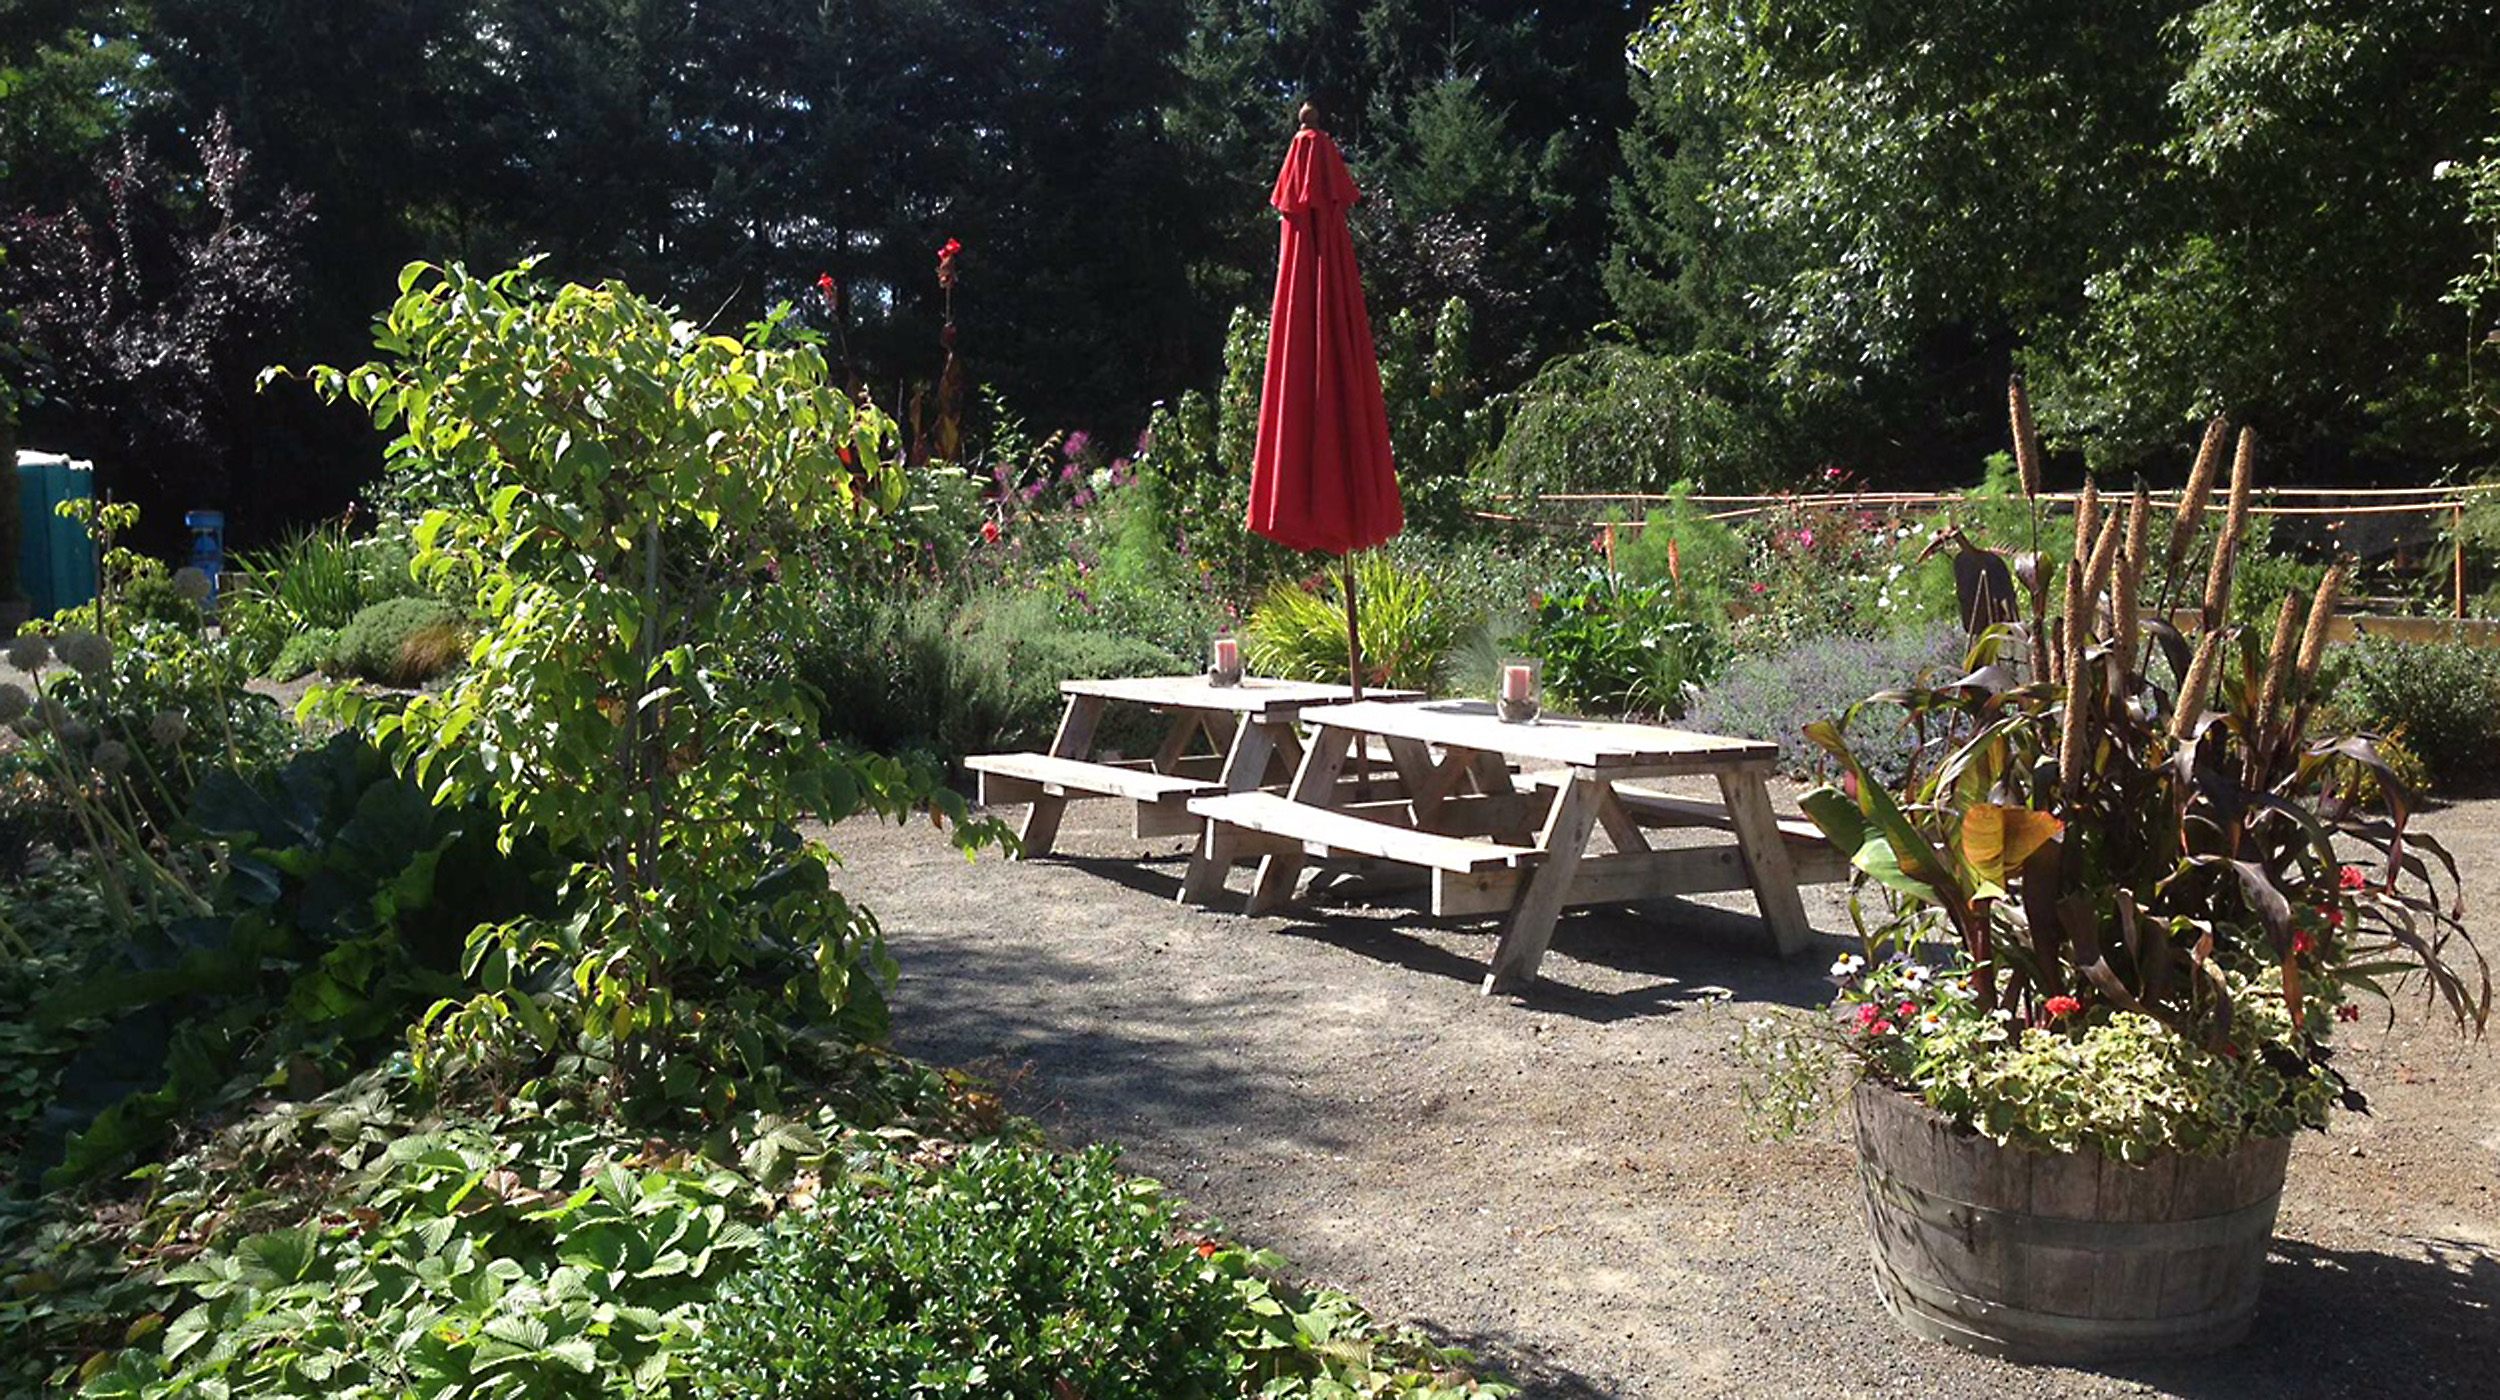 Picnic Tables in the Garden